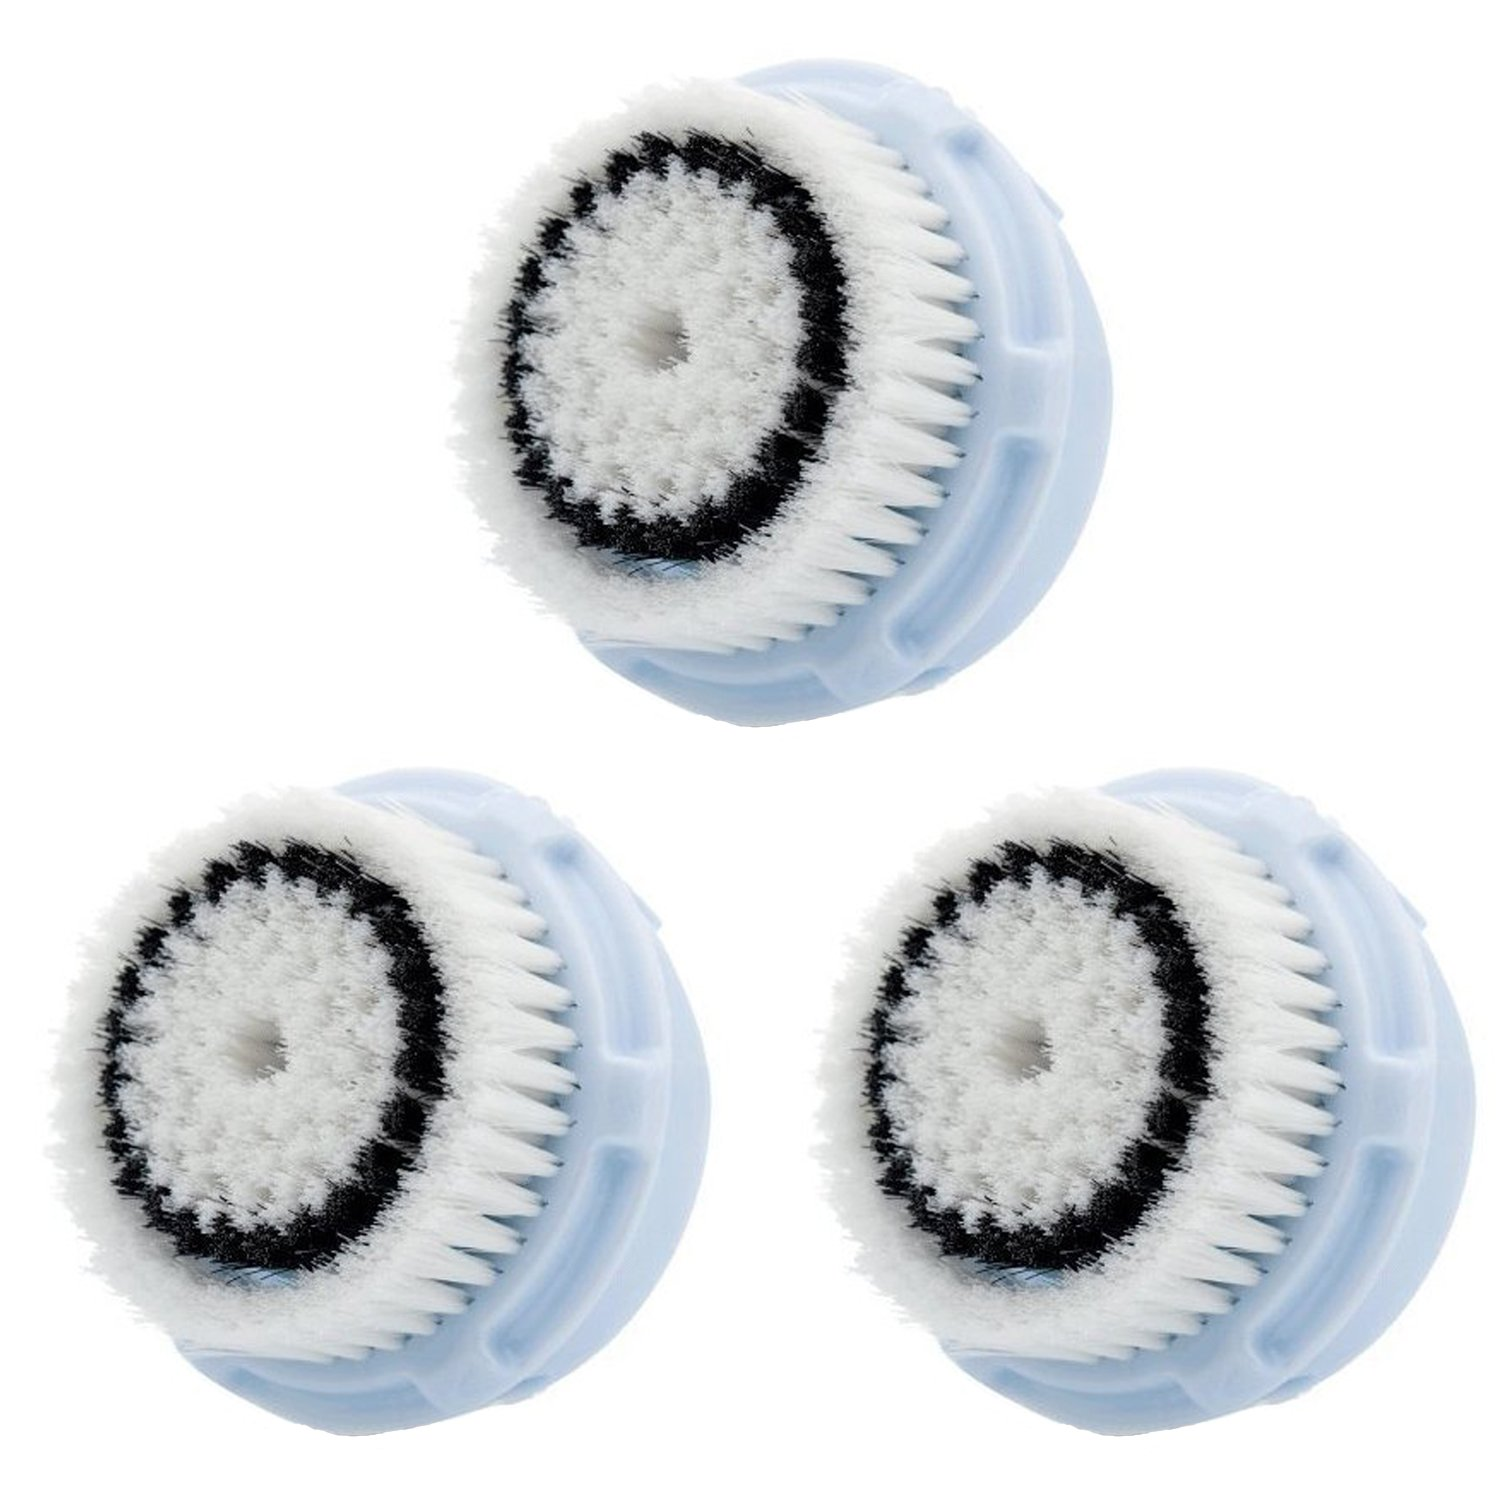 LSQtronics Delicate Facial Brush Heads for Clarisonic. Face Cleansing Brush Heads for Daily Skin Care. Compatible with Clarisonic MIA, MIA 2, ARIA, PRO and PLUS Cleansing Systems. (3-Pack Delicate Brush Head)